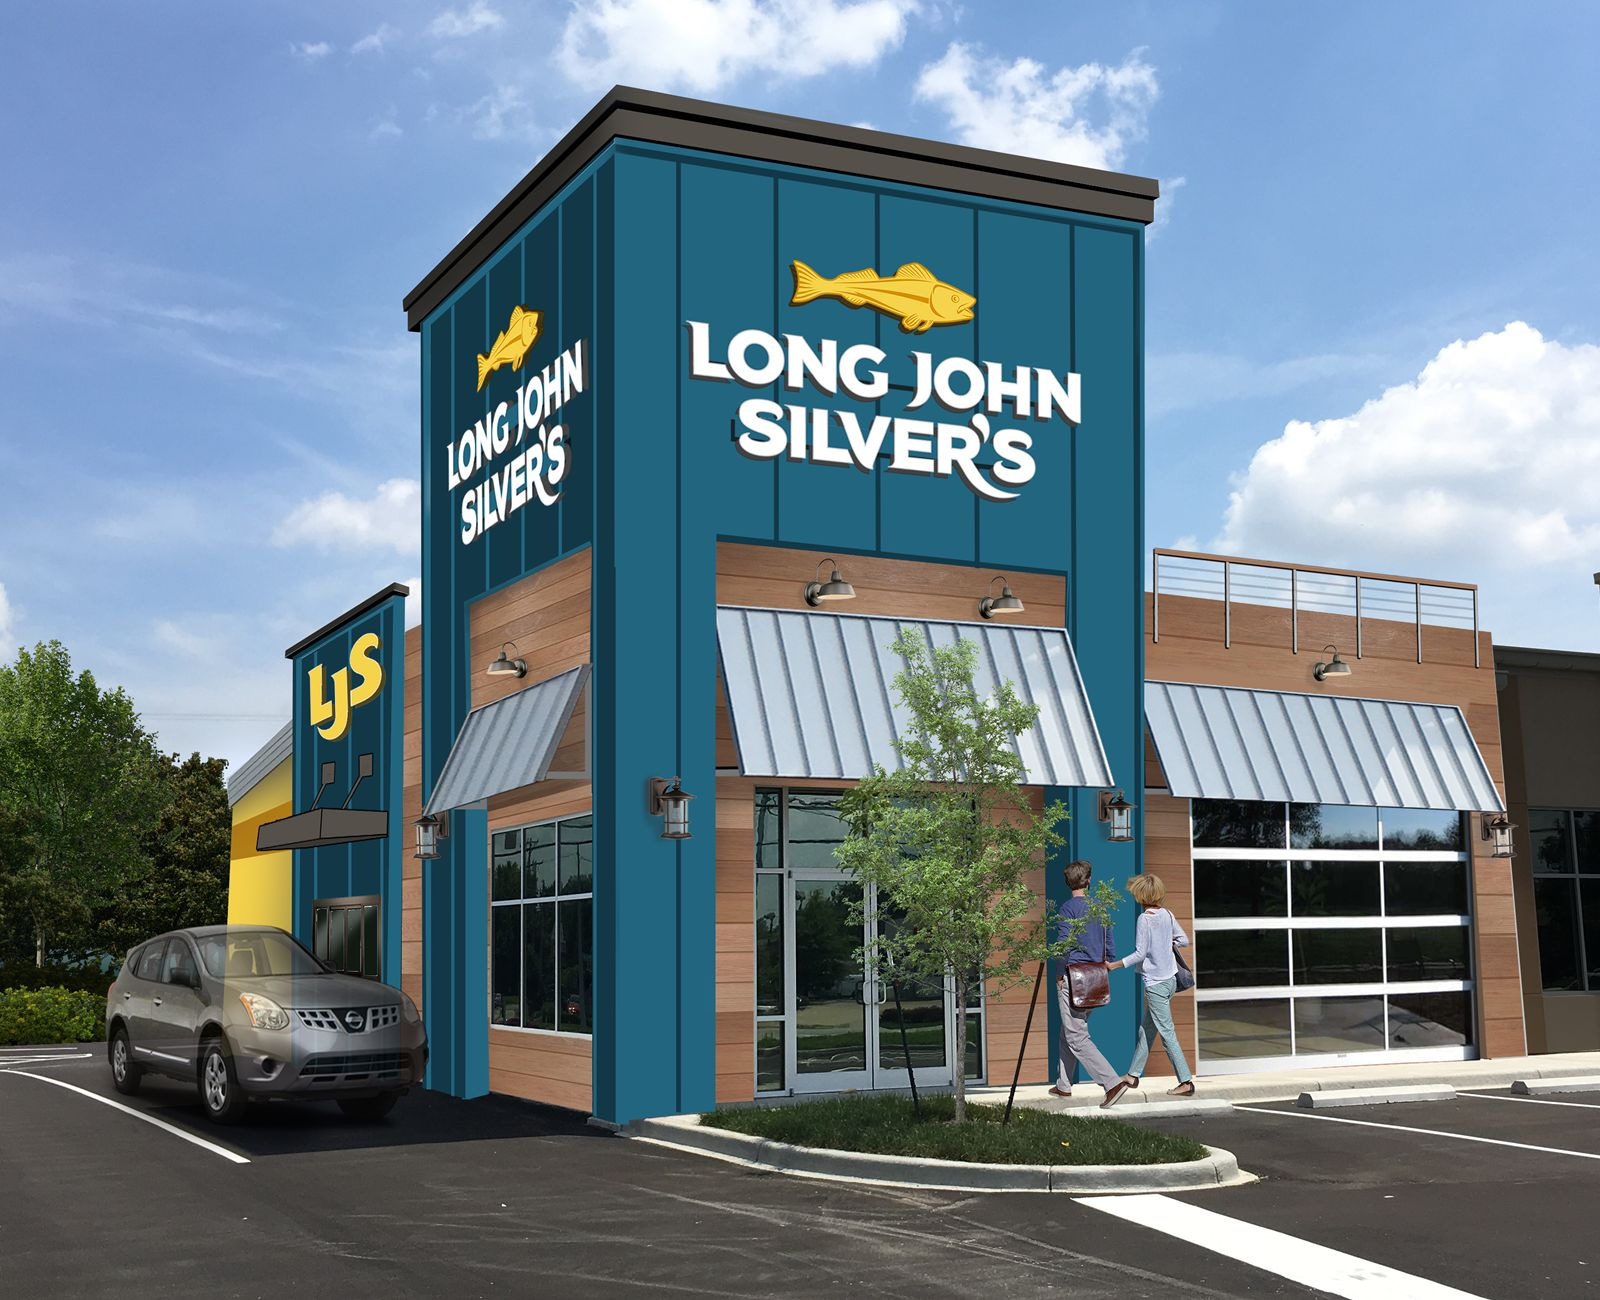 Long John Silver's is the nation's largest seafood chain. With nearly 1, locations, we are also the leading restaurant in serving quality, sustainably wild caught Whitefish and Cod. In addition to being known for our cravable fish and seafood, our menu also includes delicious white-meat chicken, and sides.3/5(19).